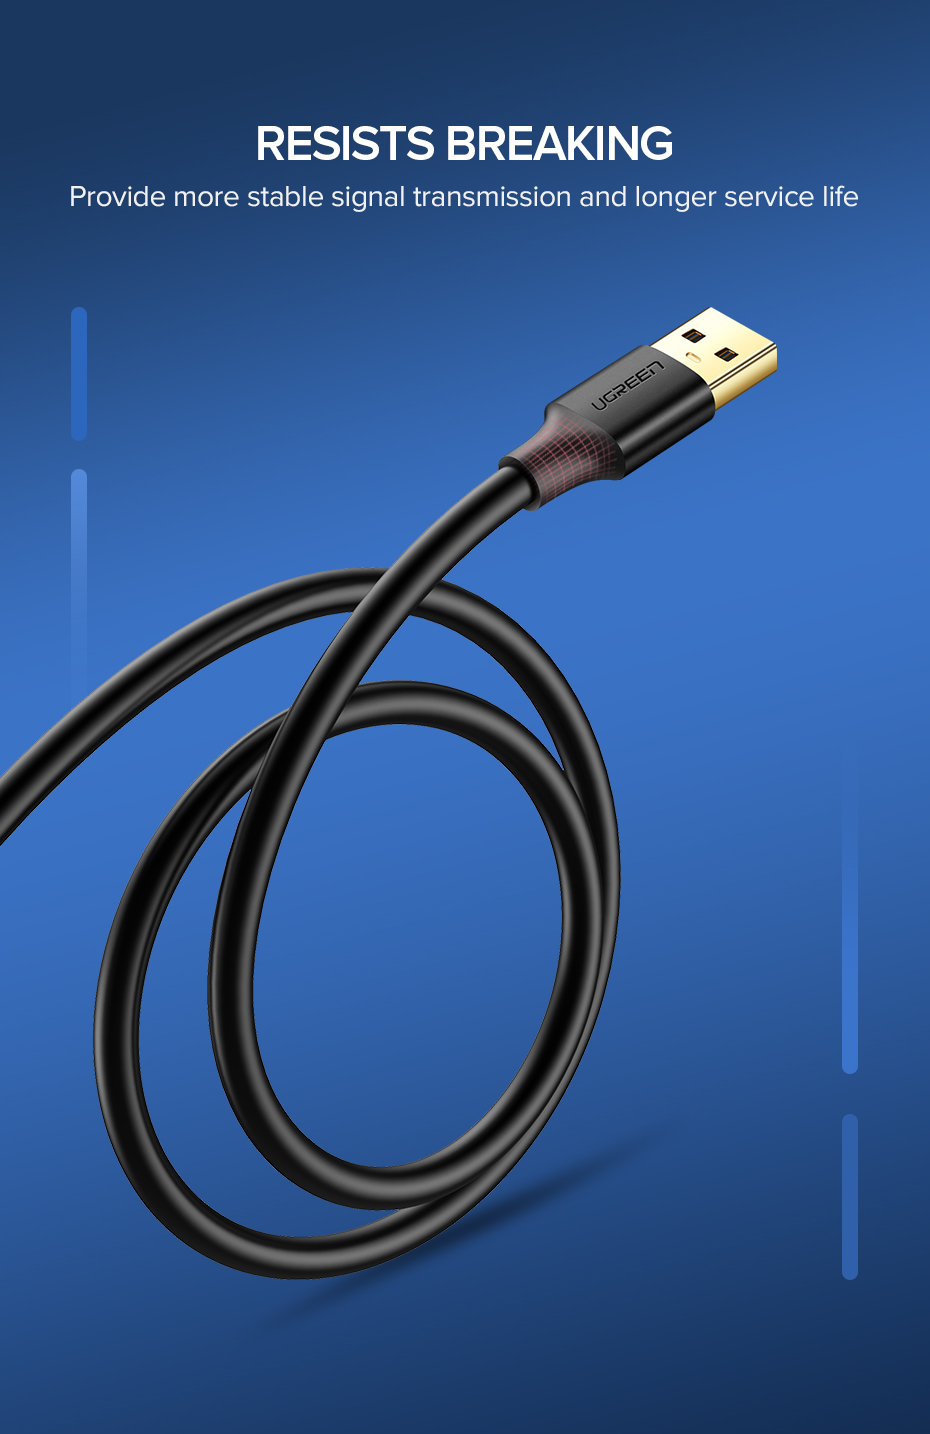 HTB1n.0mTNTpK1RjSZR0q6zEwXXaD Ugreen USB Extension Cable USB 3.0 Cable for Smart TV PS4 Xbox One SSD USB3.0 2.0 to Extender Data Cord Mini USB Extension Cable